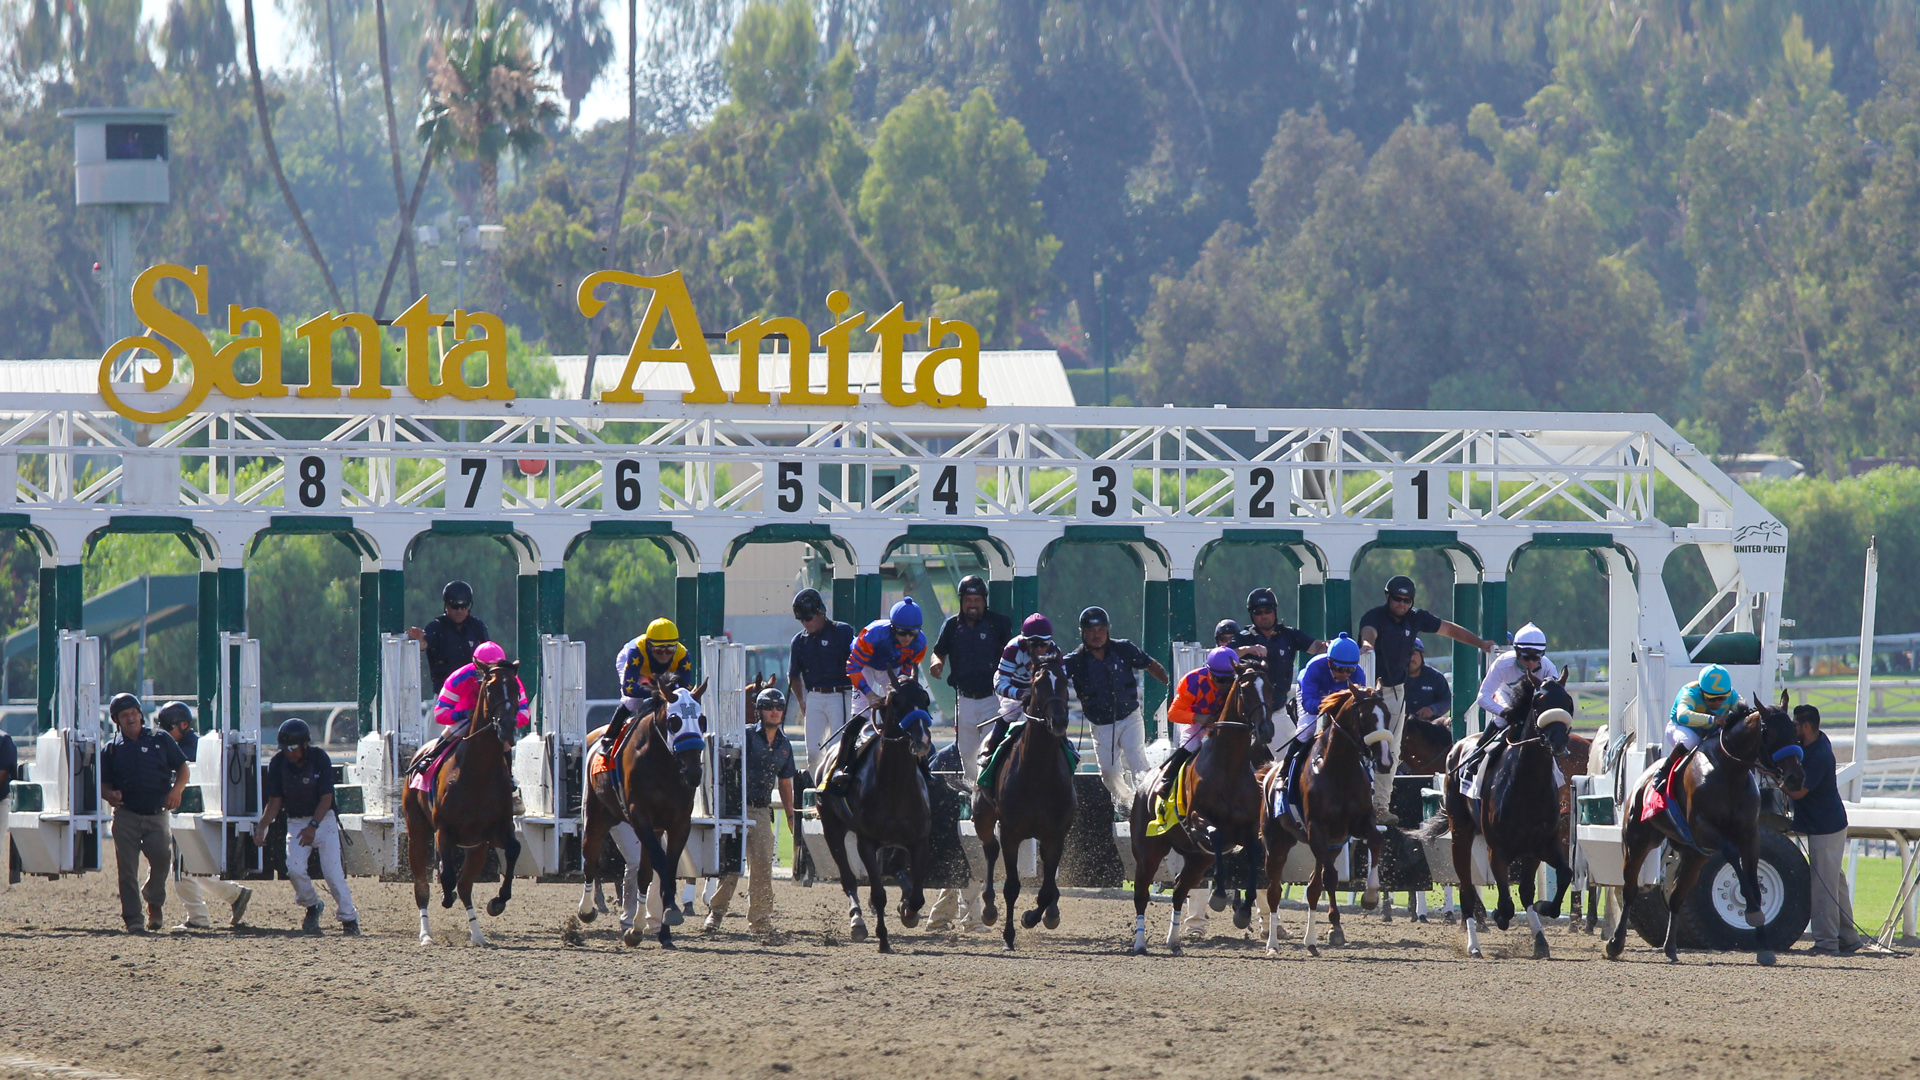 Jeff Siegel's Blog: Santa Anita Analysis for June 26, 2016